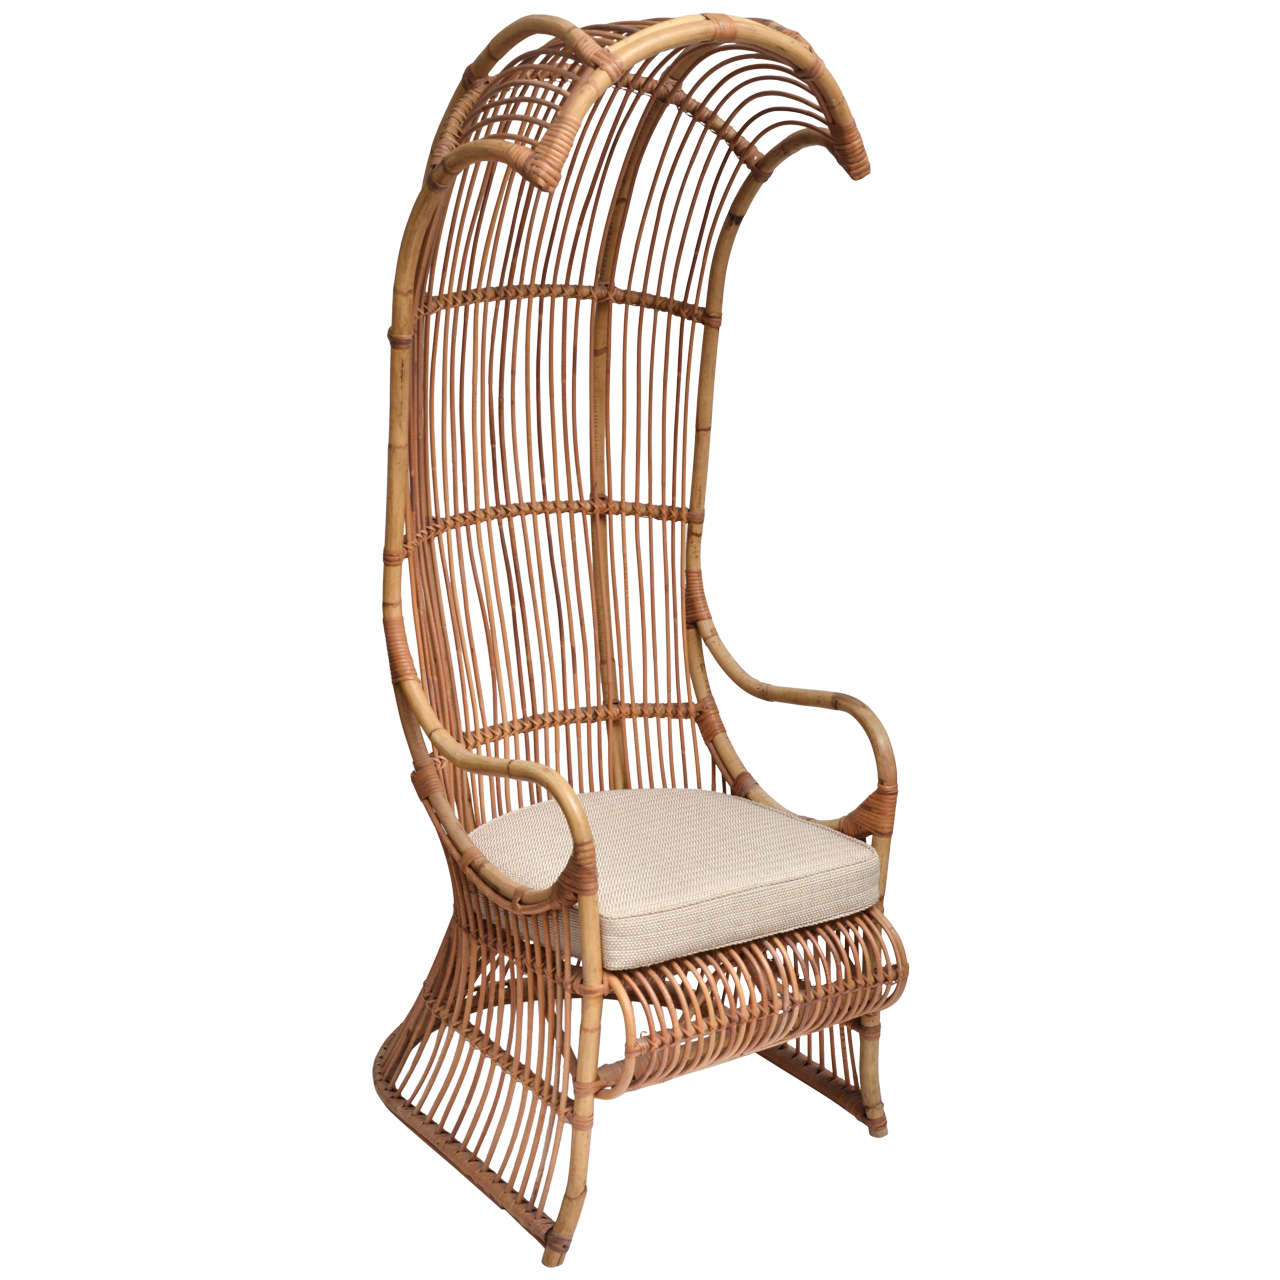 Bamboo Chair With Arms: Bamboo High Back Canopy Arm Chair With Upholstered Seat